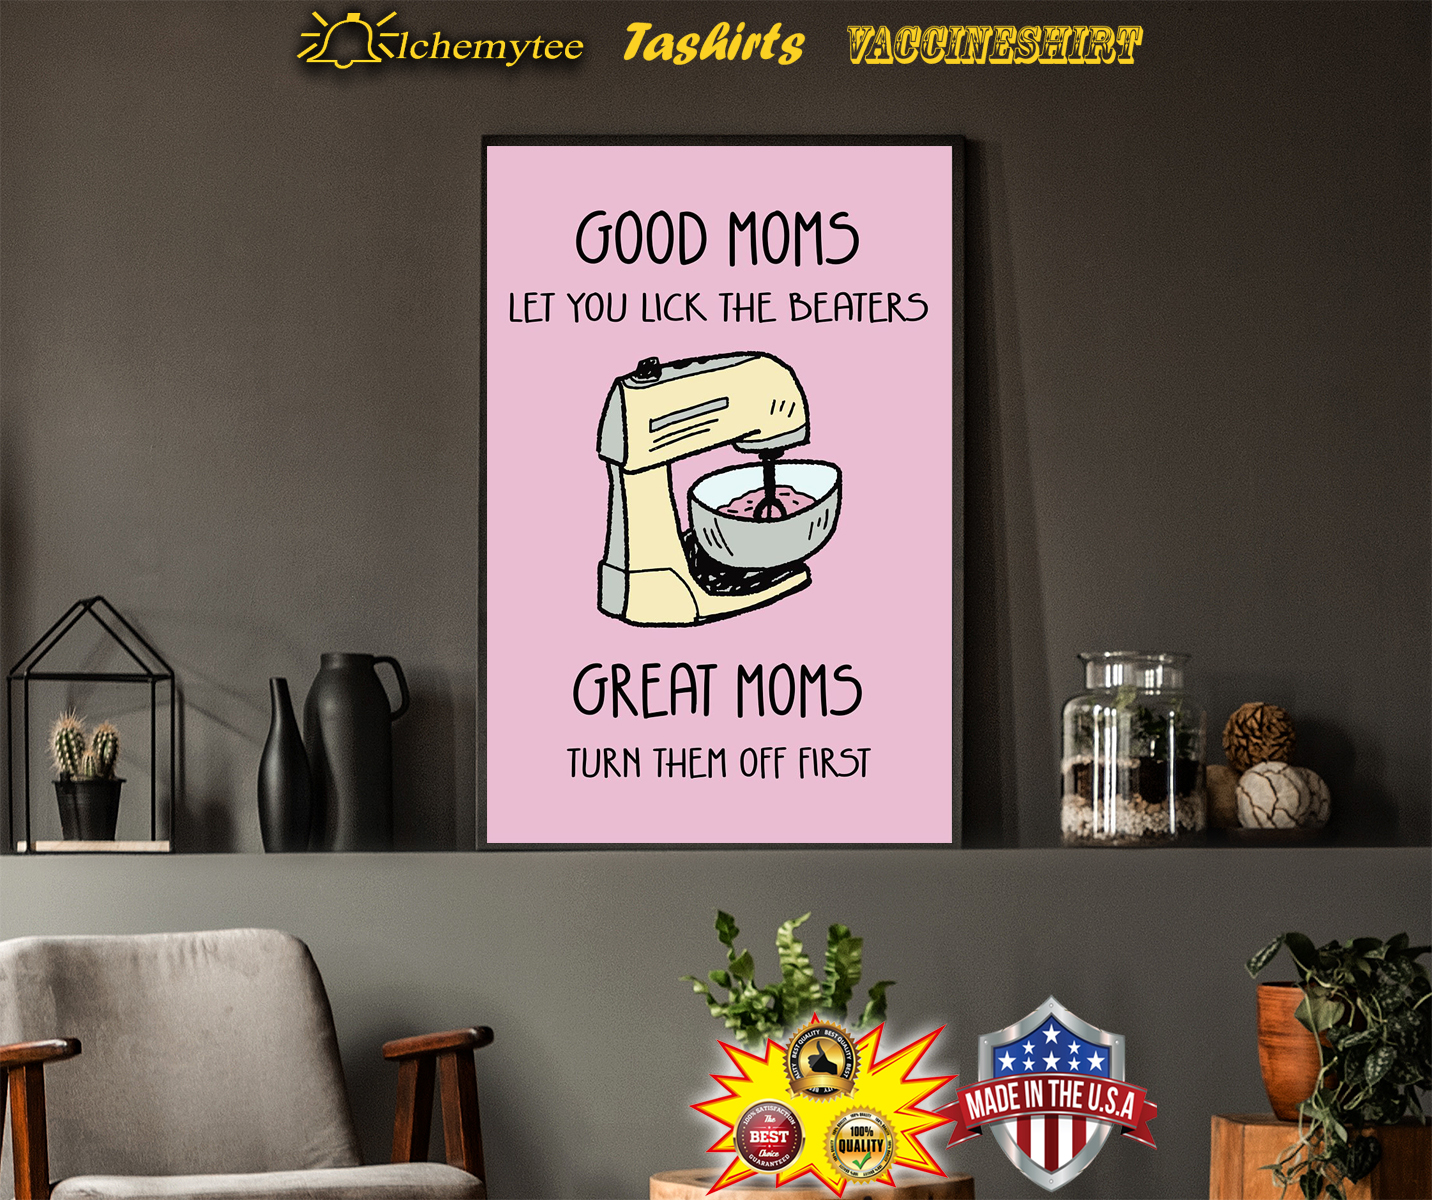 Food mixer Good moms let you lick the beaters poster